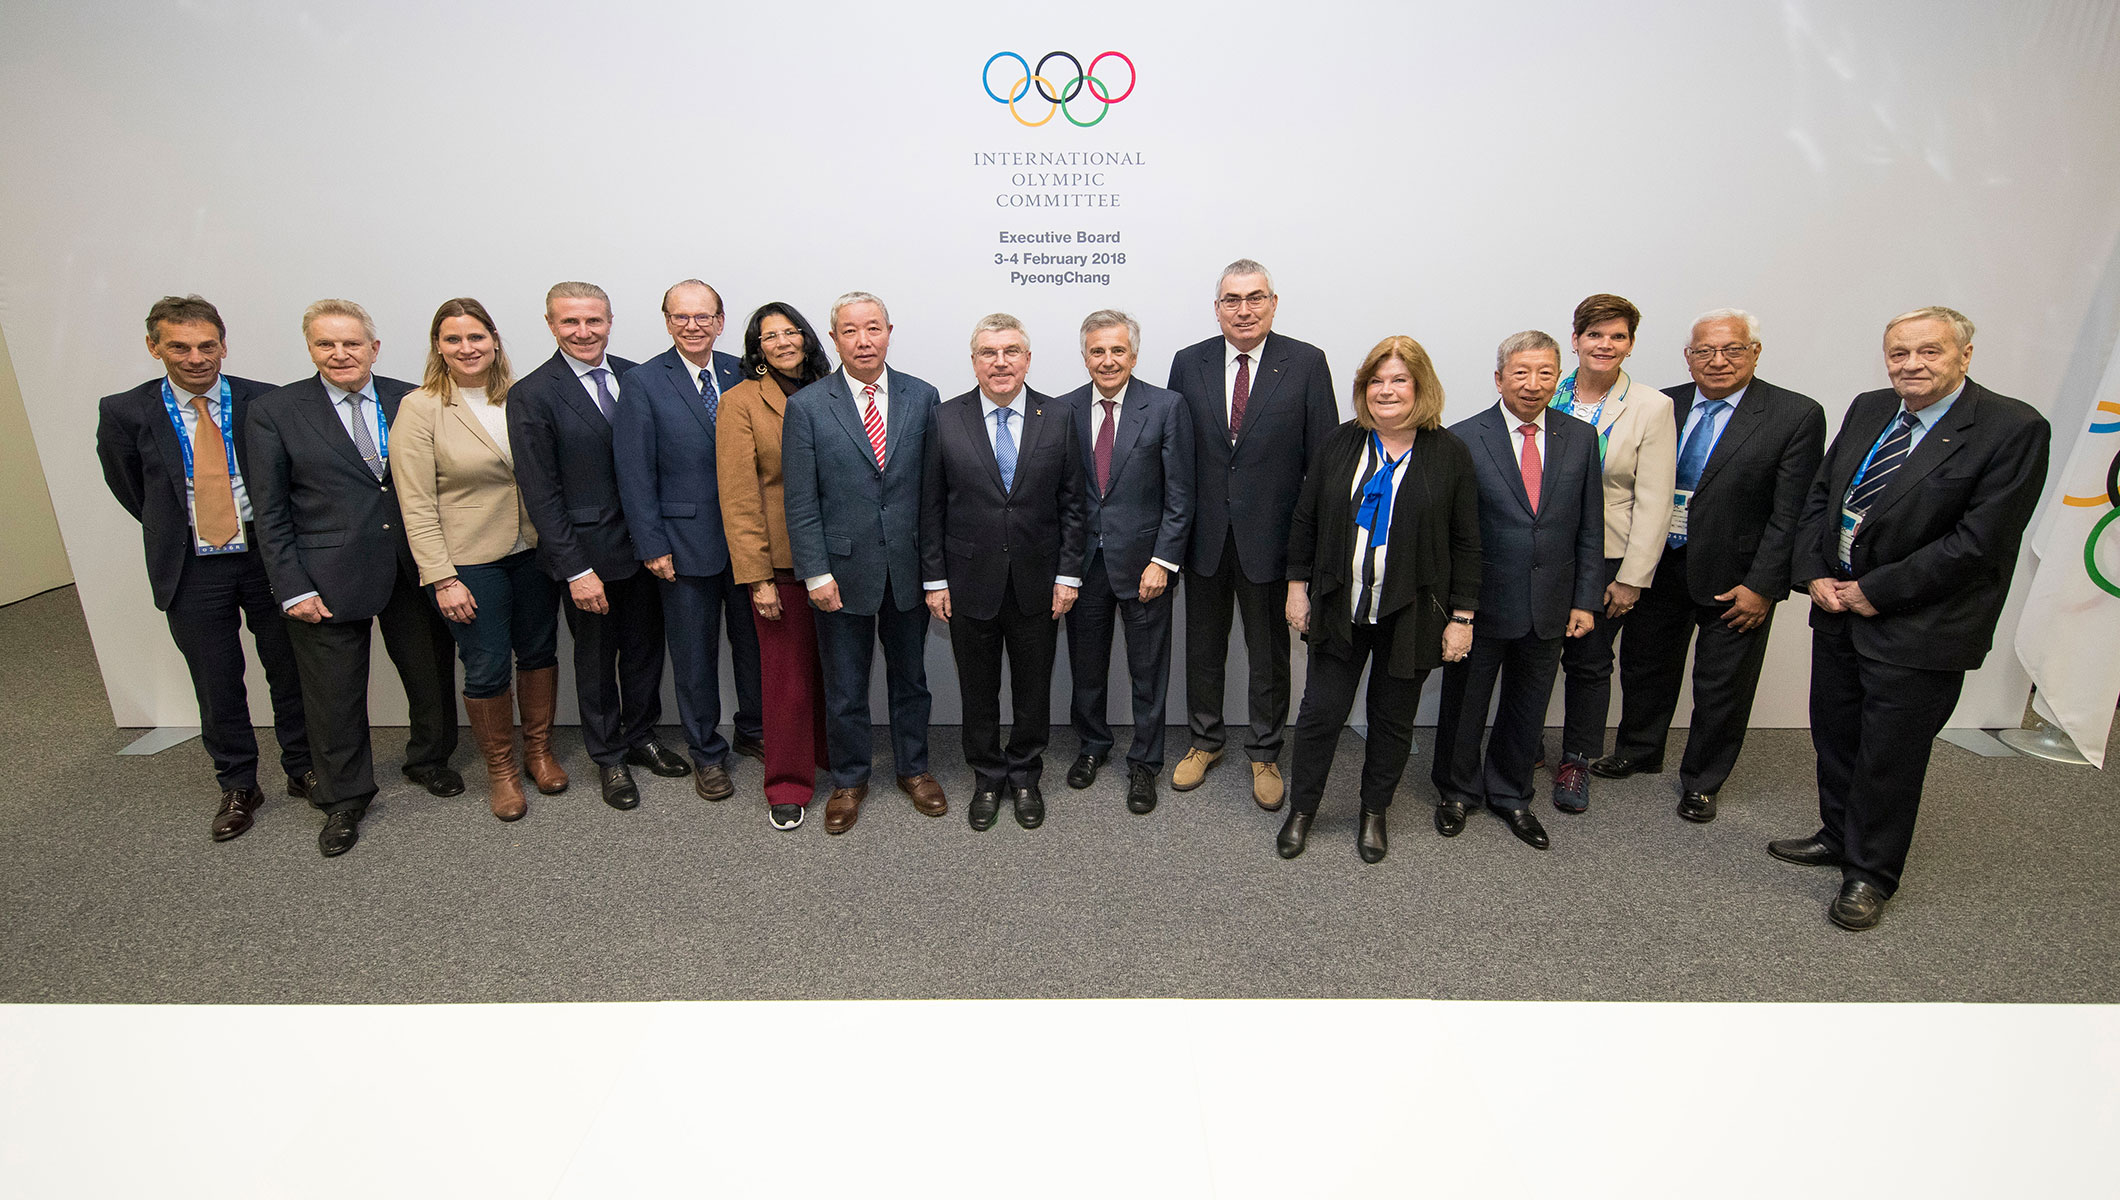 IOC Executive Board Meeting - PyeongChang